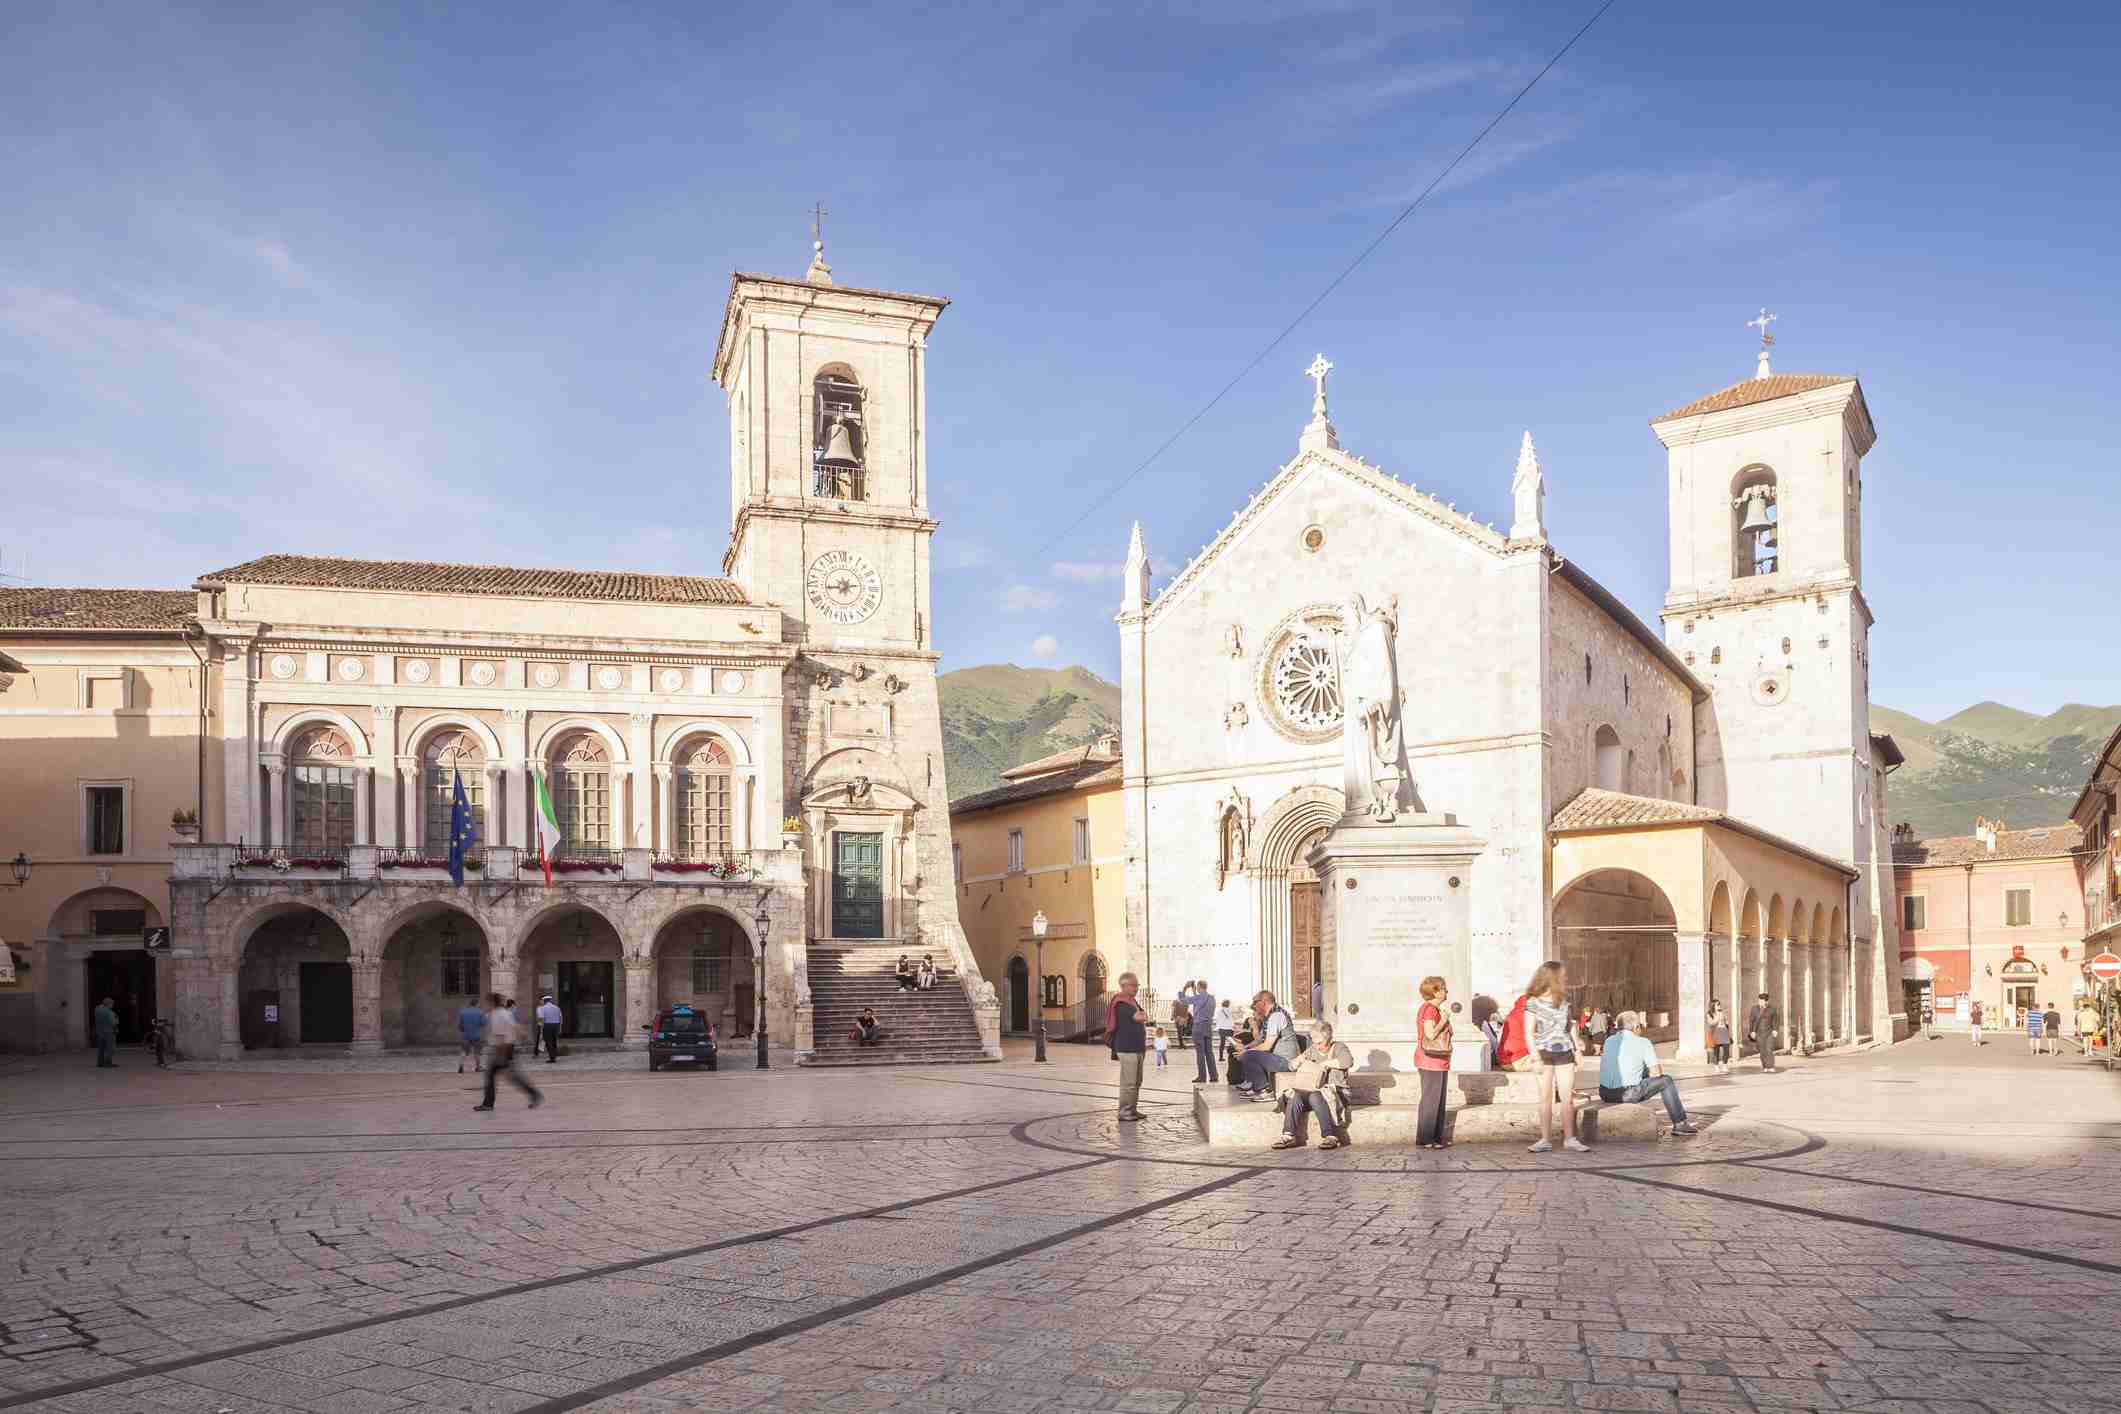 Piazza San Benedetto in Norcia, Italy.